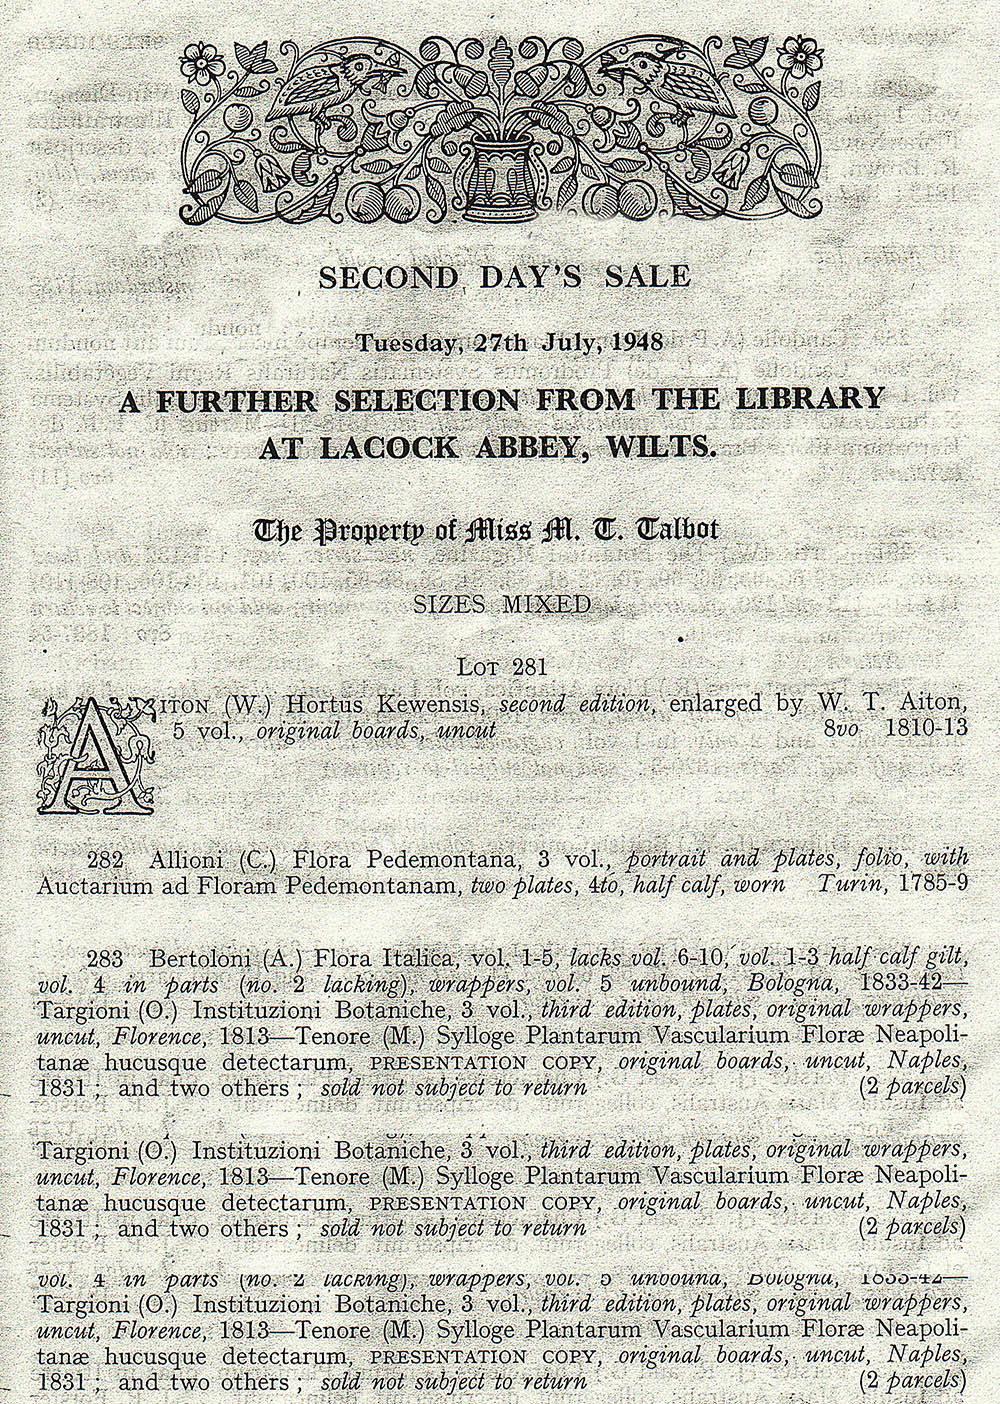 sale-sotheby-27july1948